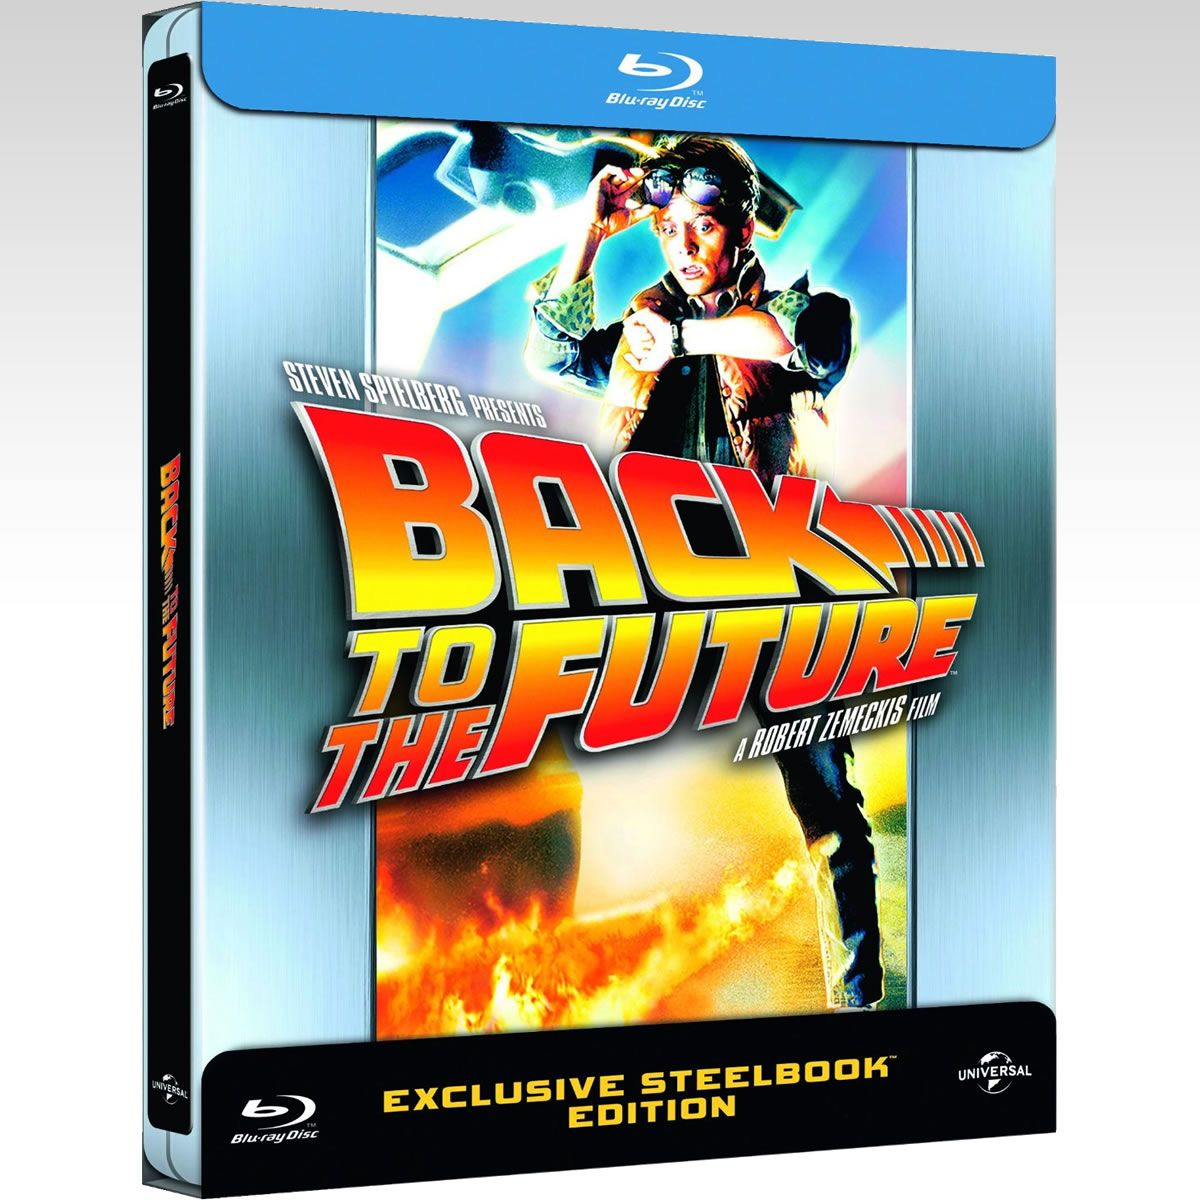 BACK TO THE FUTURE 1 Limited Edition Steelbook [Imported] (BLU-RAY